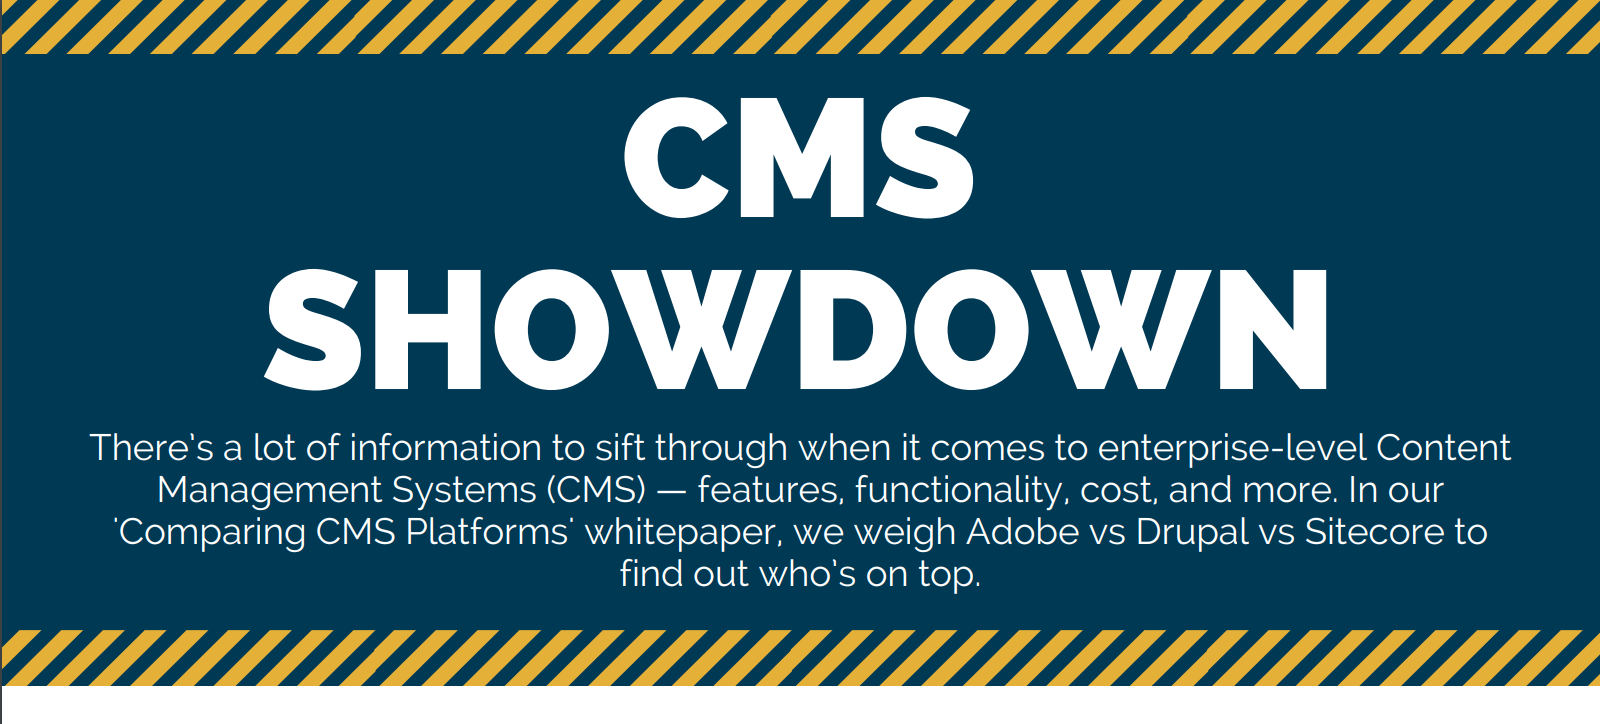 CMS Showdown